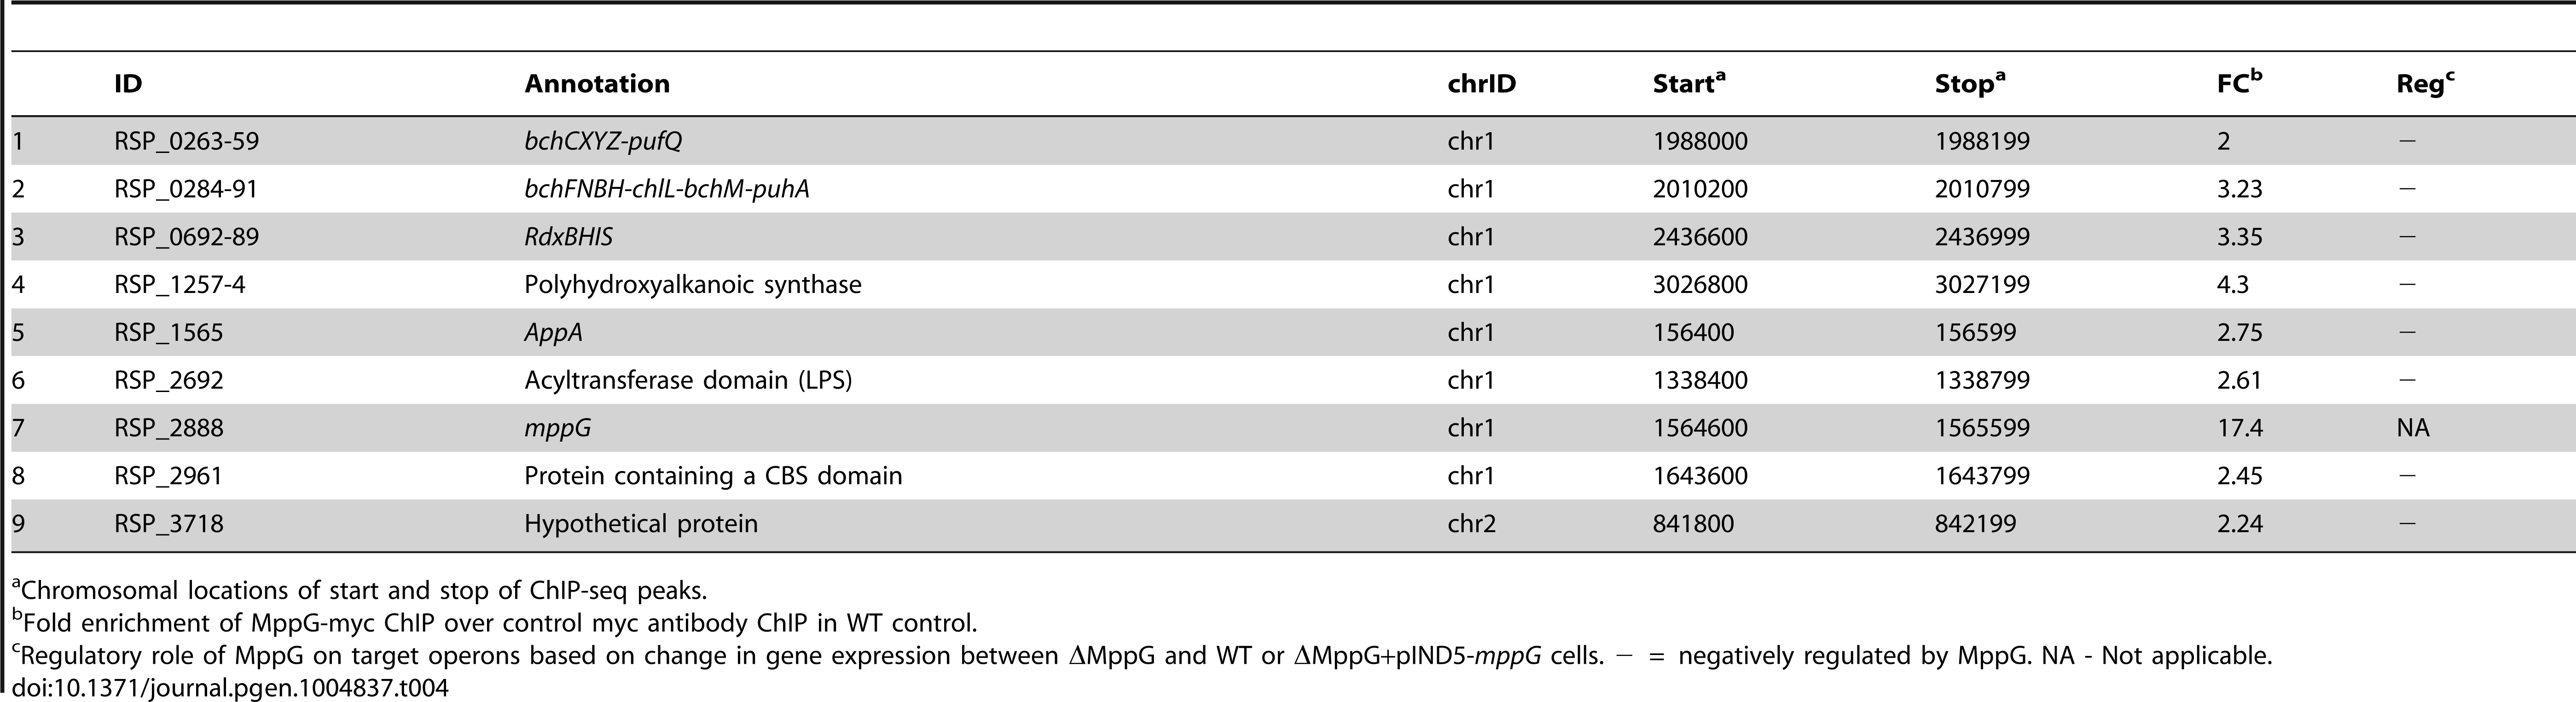 MppG target genes identified by ChIP-seq and gene expression analysis.